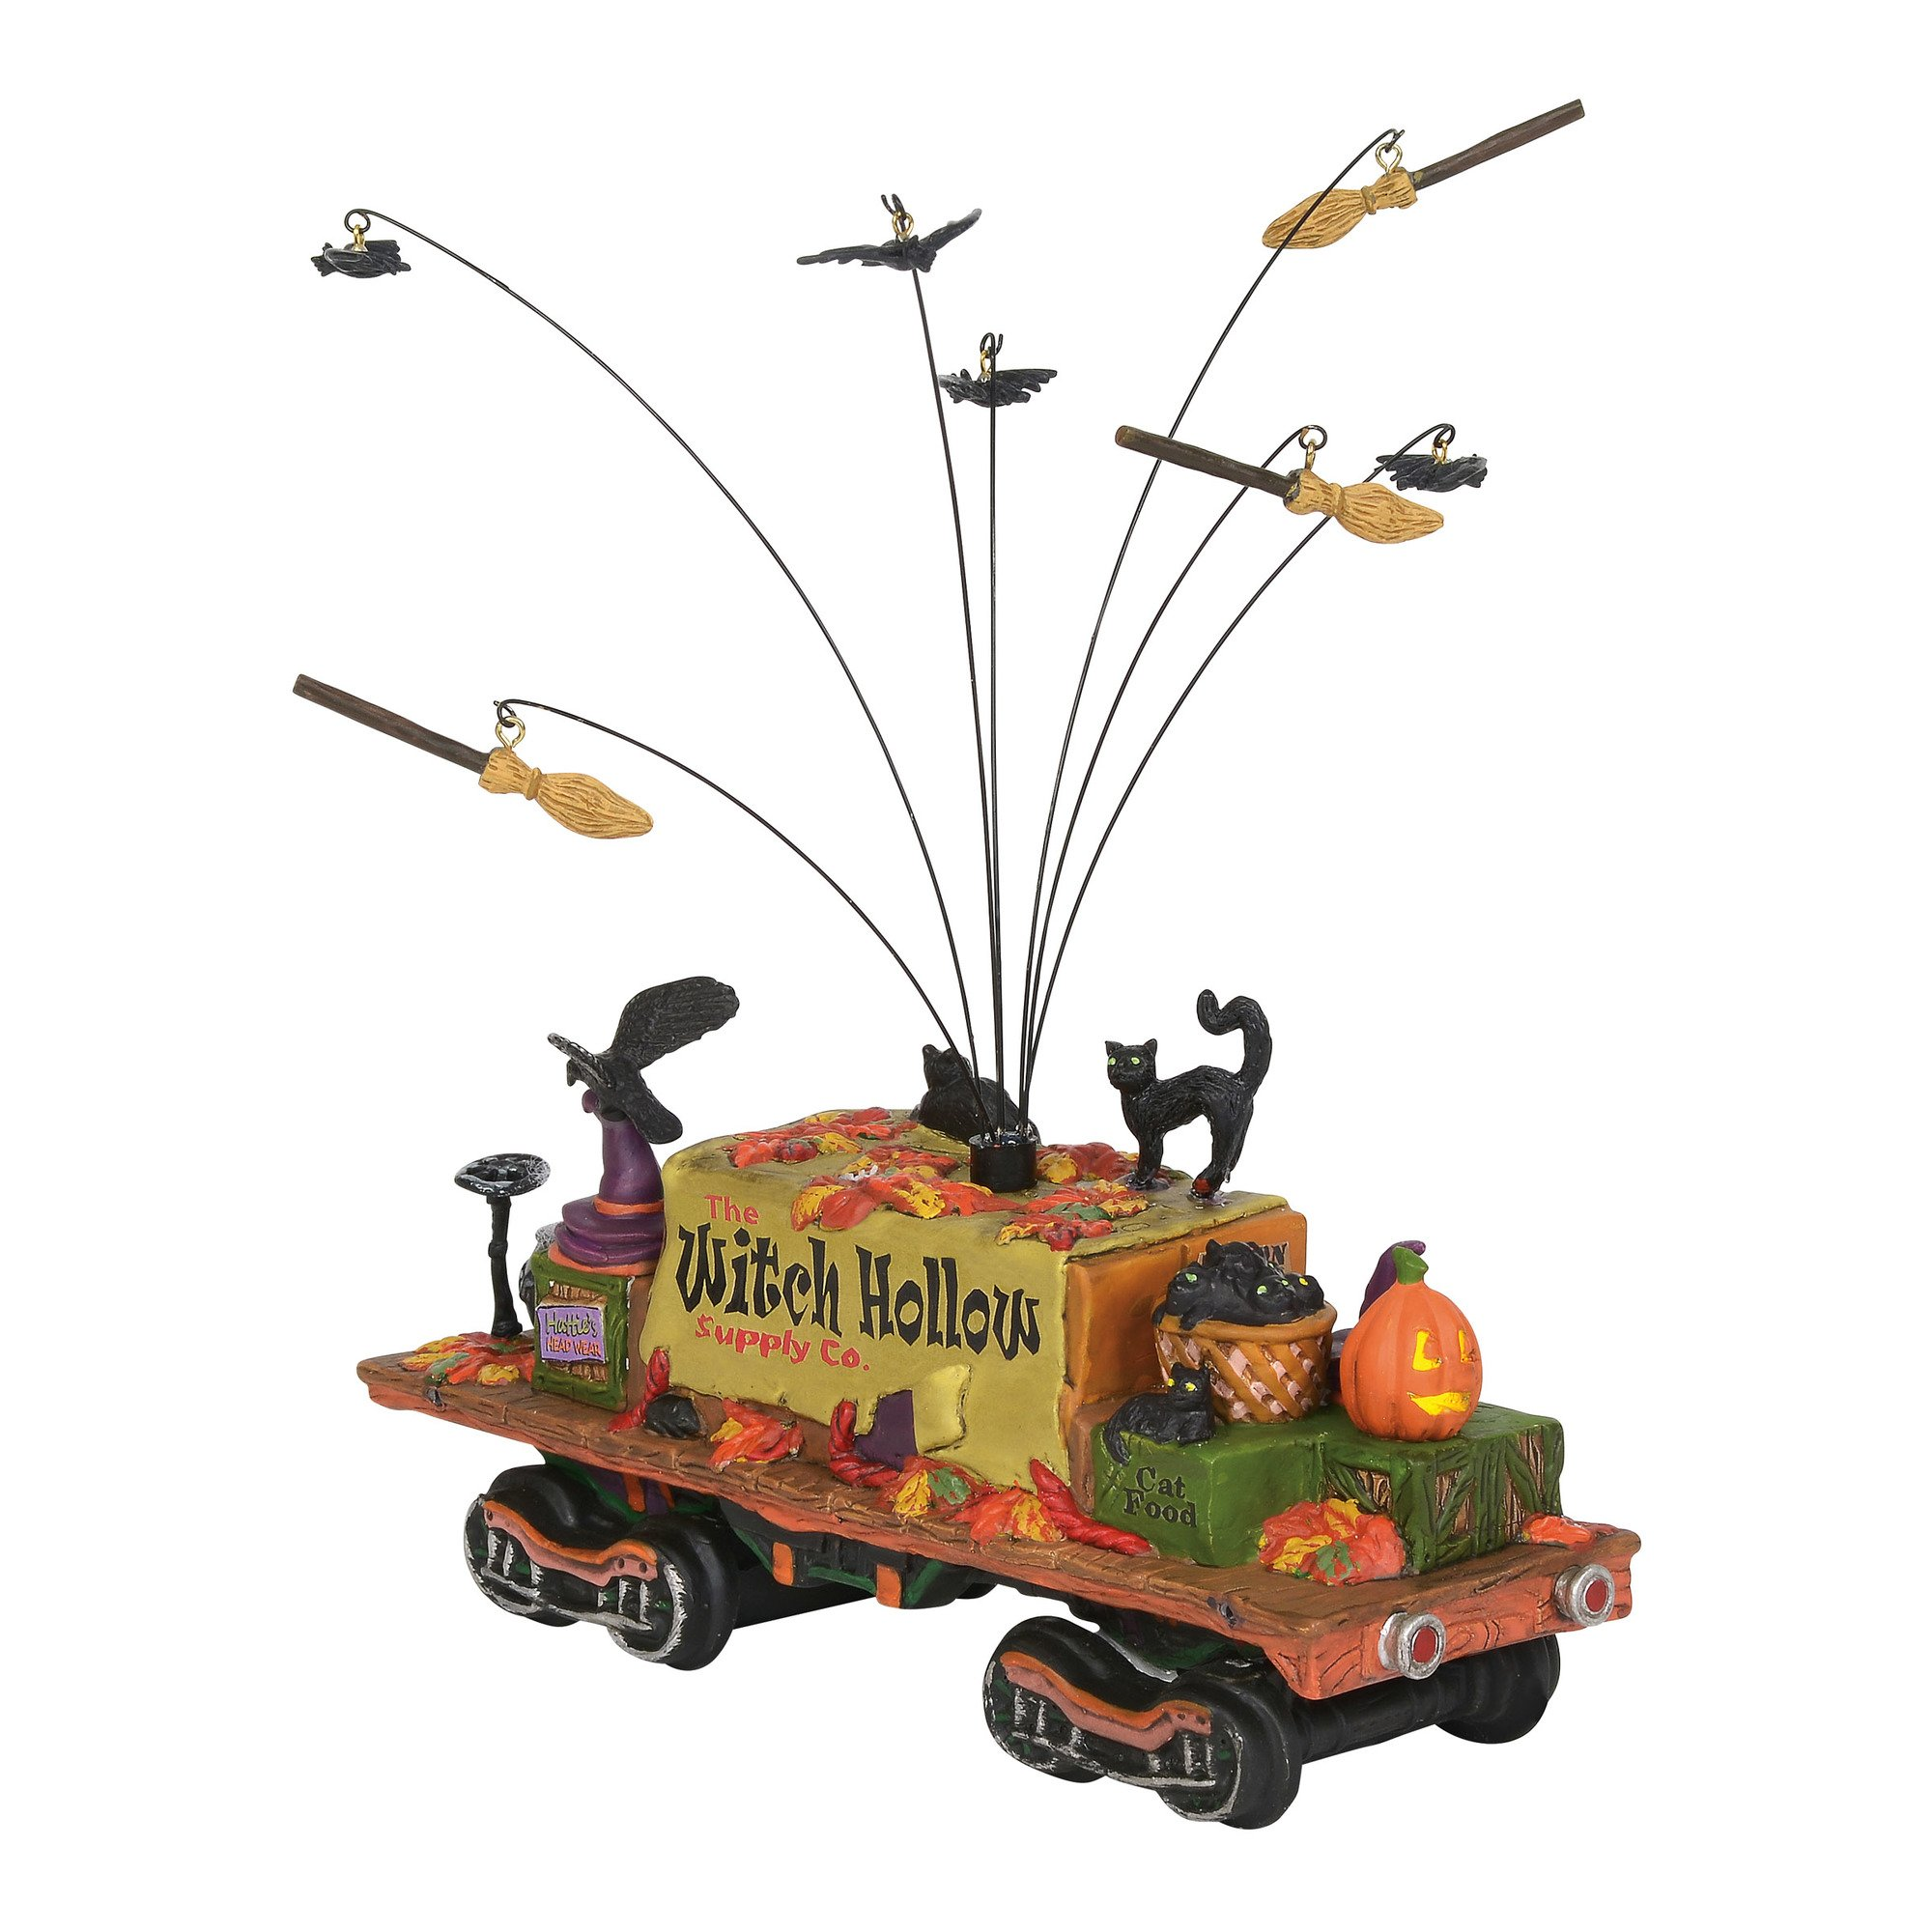 Department56 Snow Village Accessories Halloween Witch Hollow Supply Car Lit Figurine, 3.39'', Multicolor by Department56